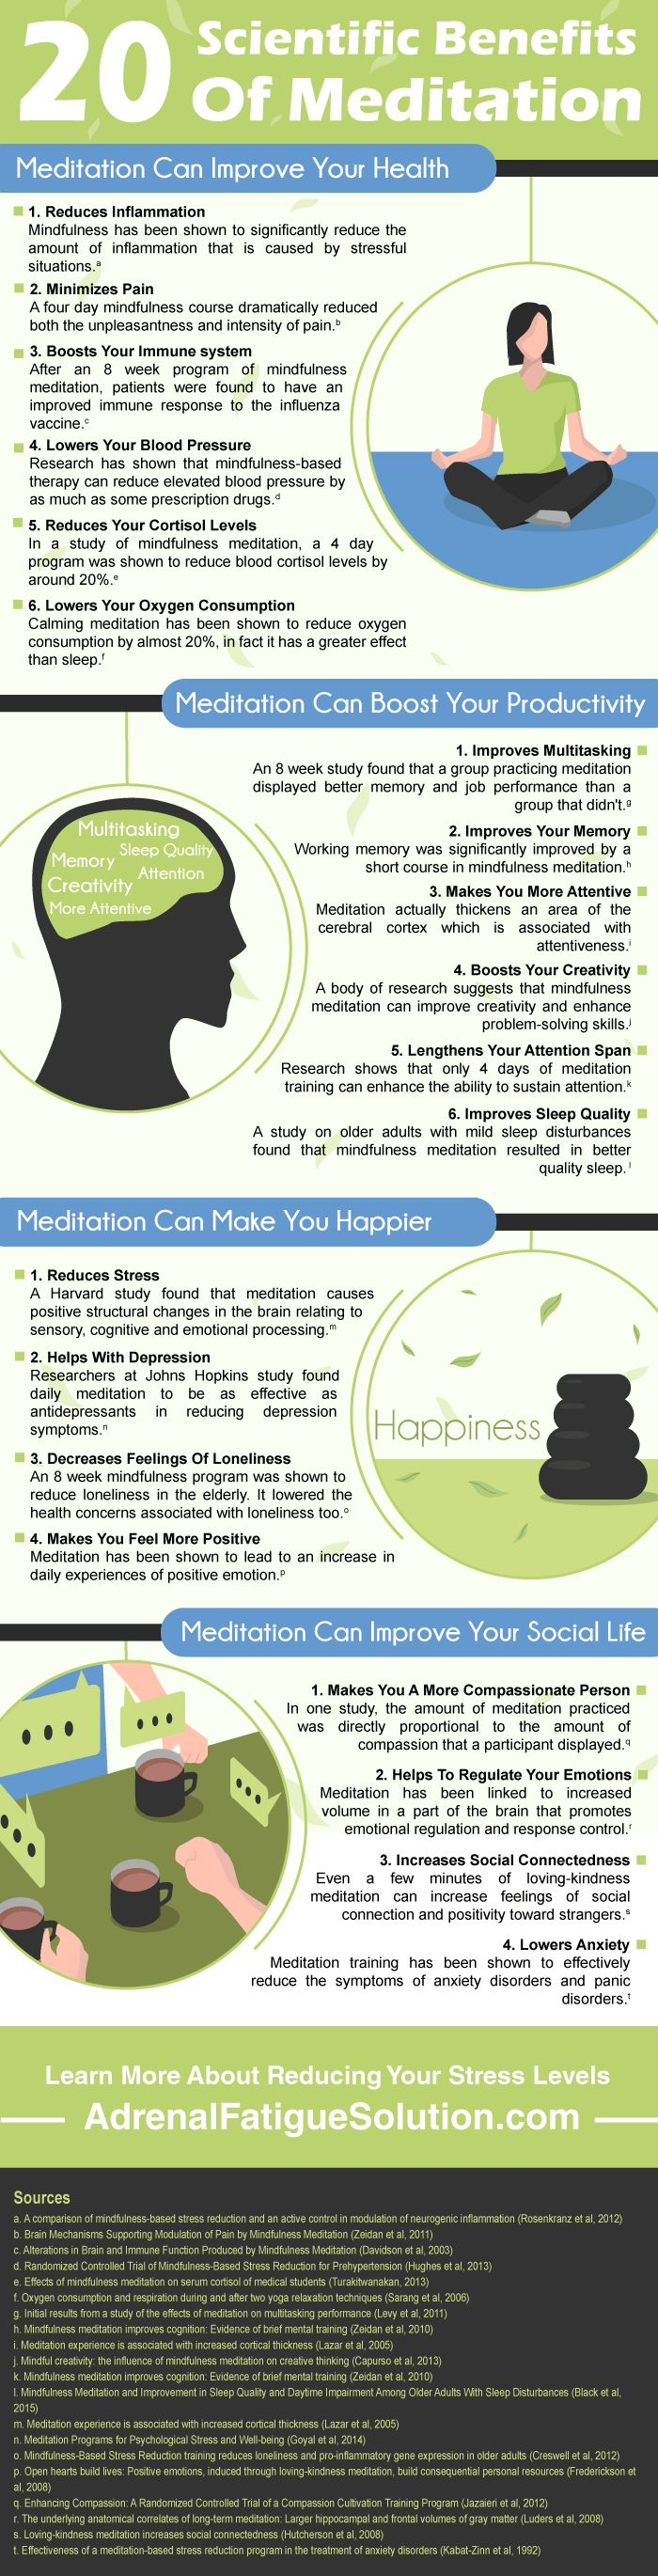 20 ways that meditation can improve your health